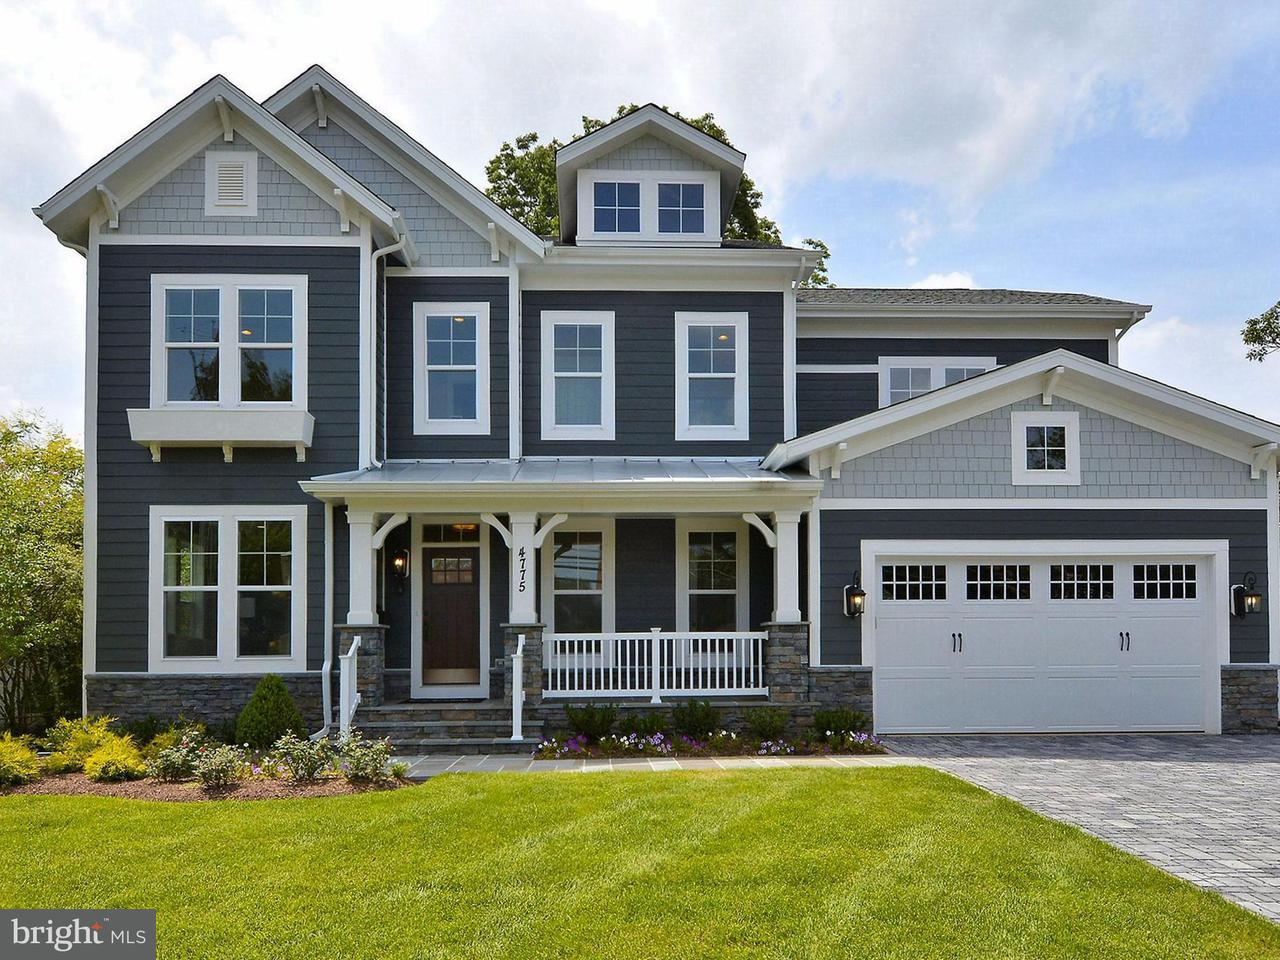 Single Family Home for Sale at 12462 MARGARET THOMAS Lane 12462 MARGARET THOMAS Lane Herndon, Virginia 20171 United States